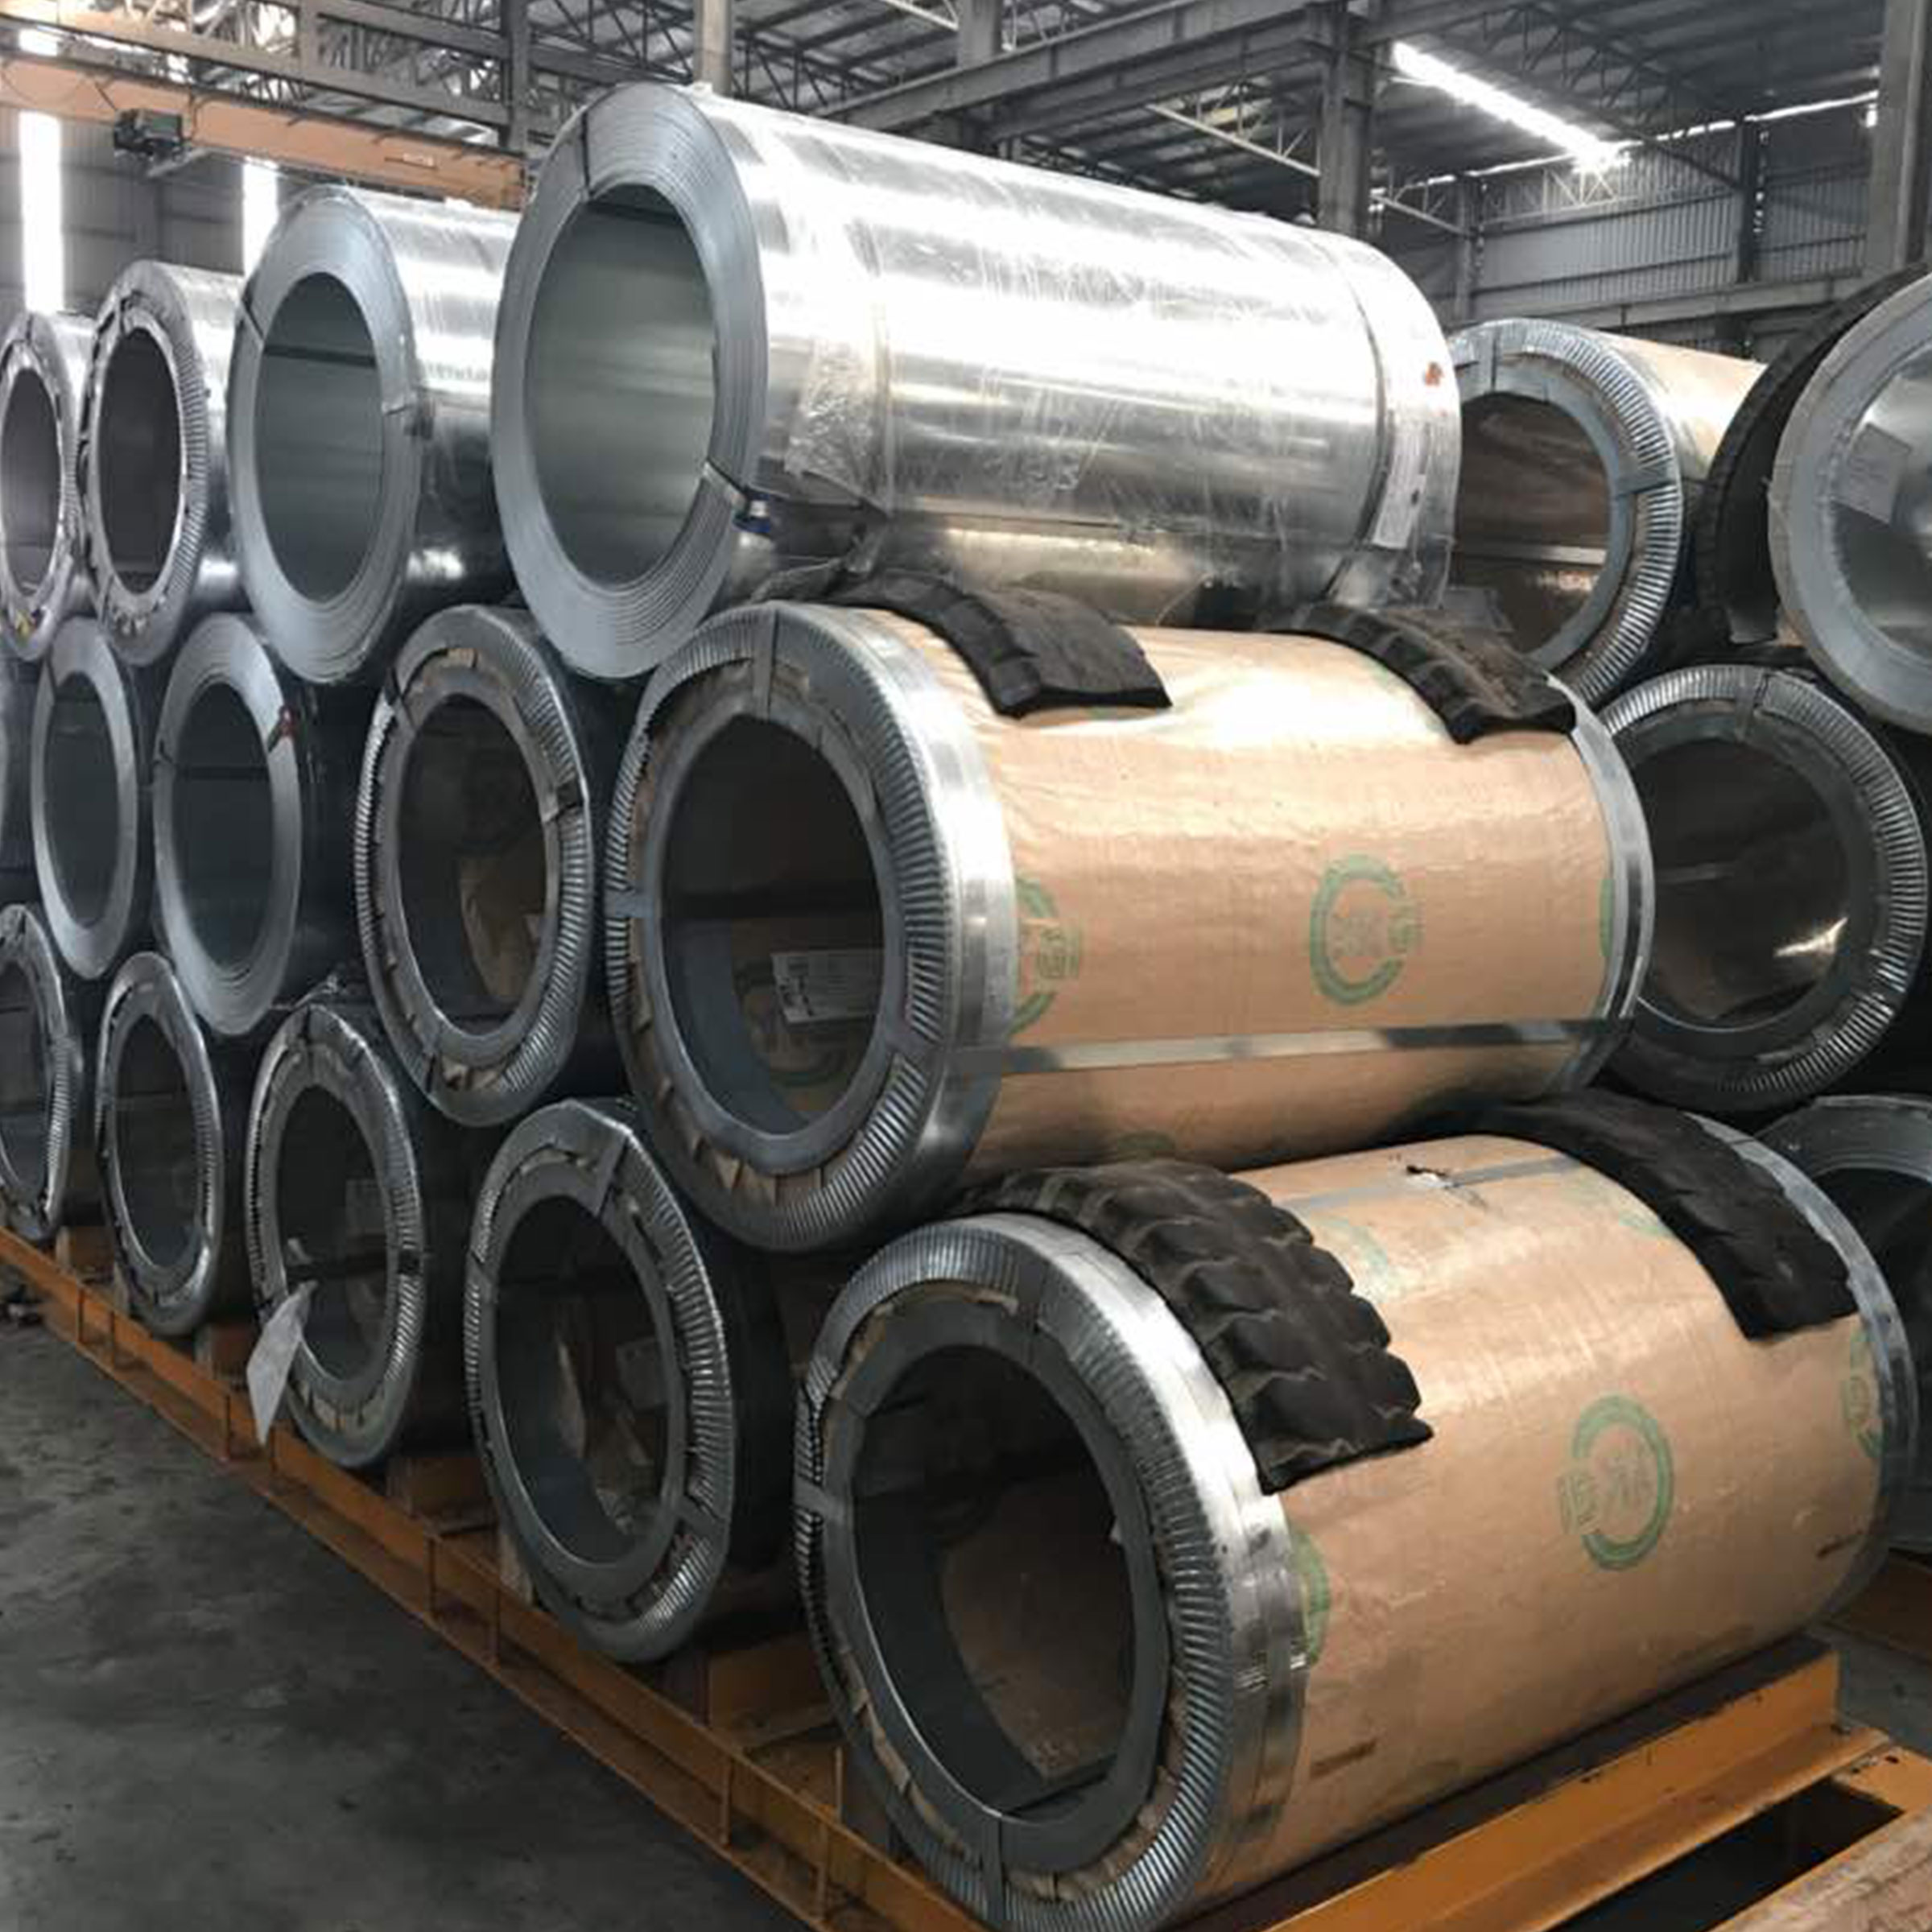 All Steel Sheet In Coil Form